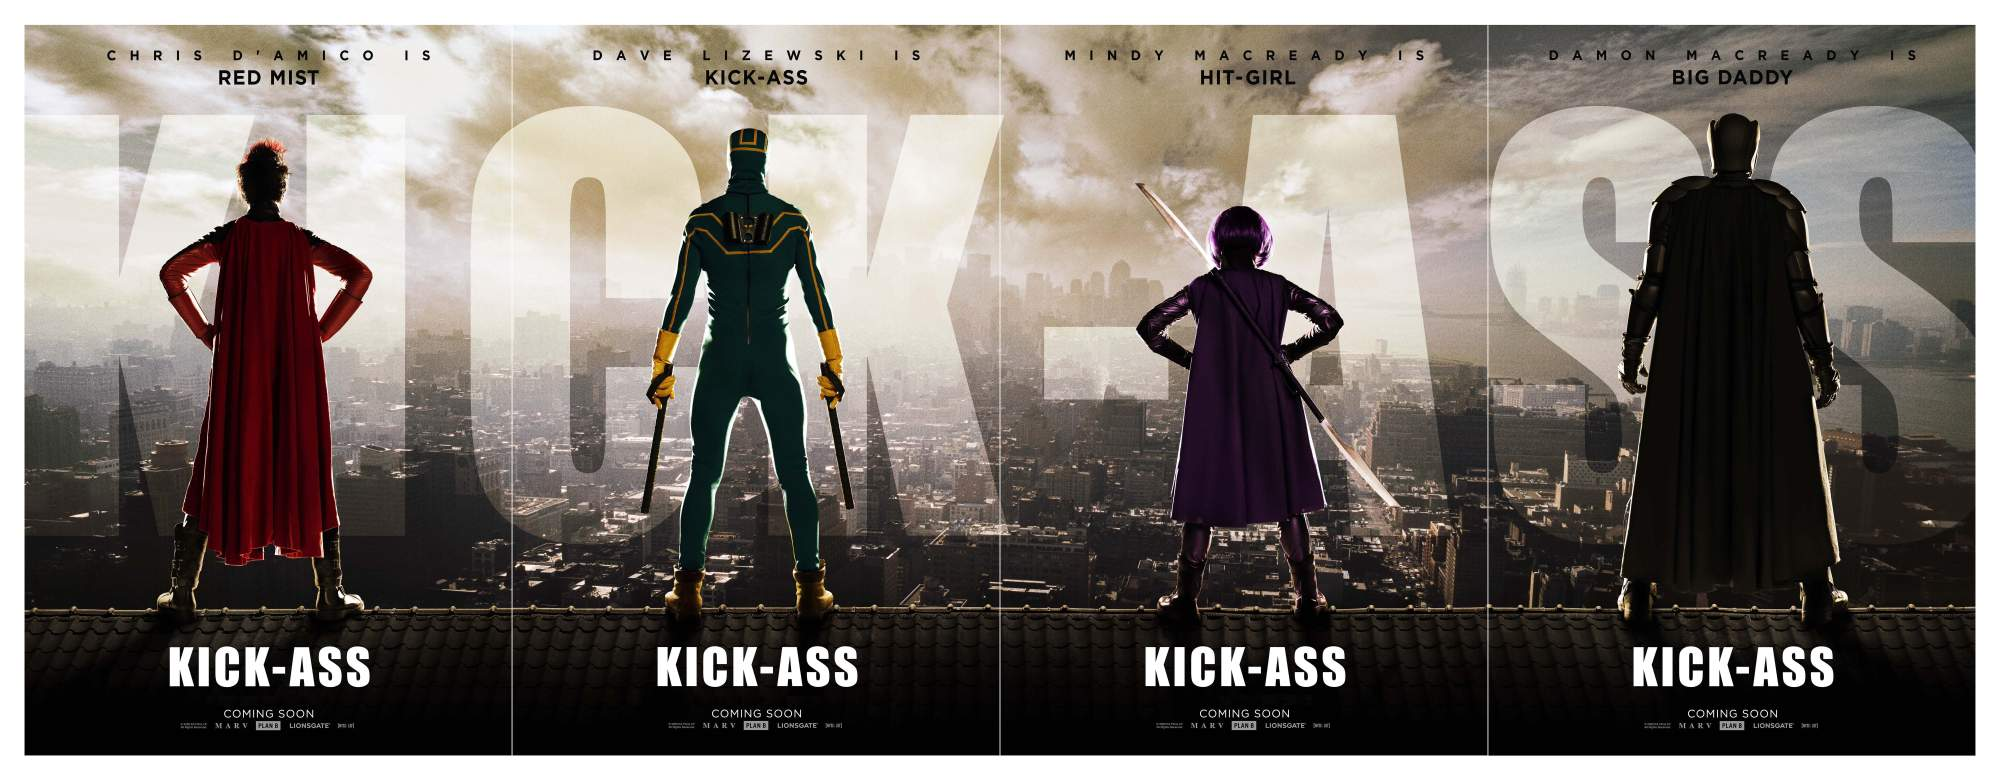 https://i2.wp.com/youbentmywookie.com/wookie/gallery/1109_four-new-kick-ass-character-posters-debut-online/kick-ass-movie-poster.jpg?quality=88&strip